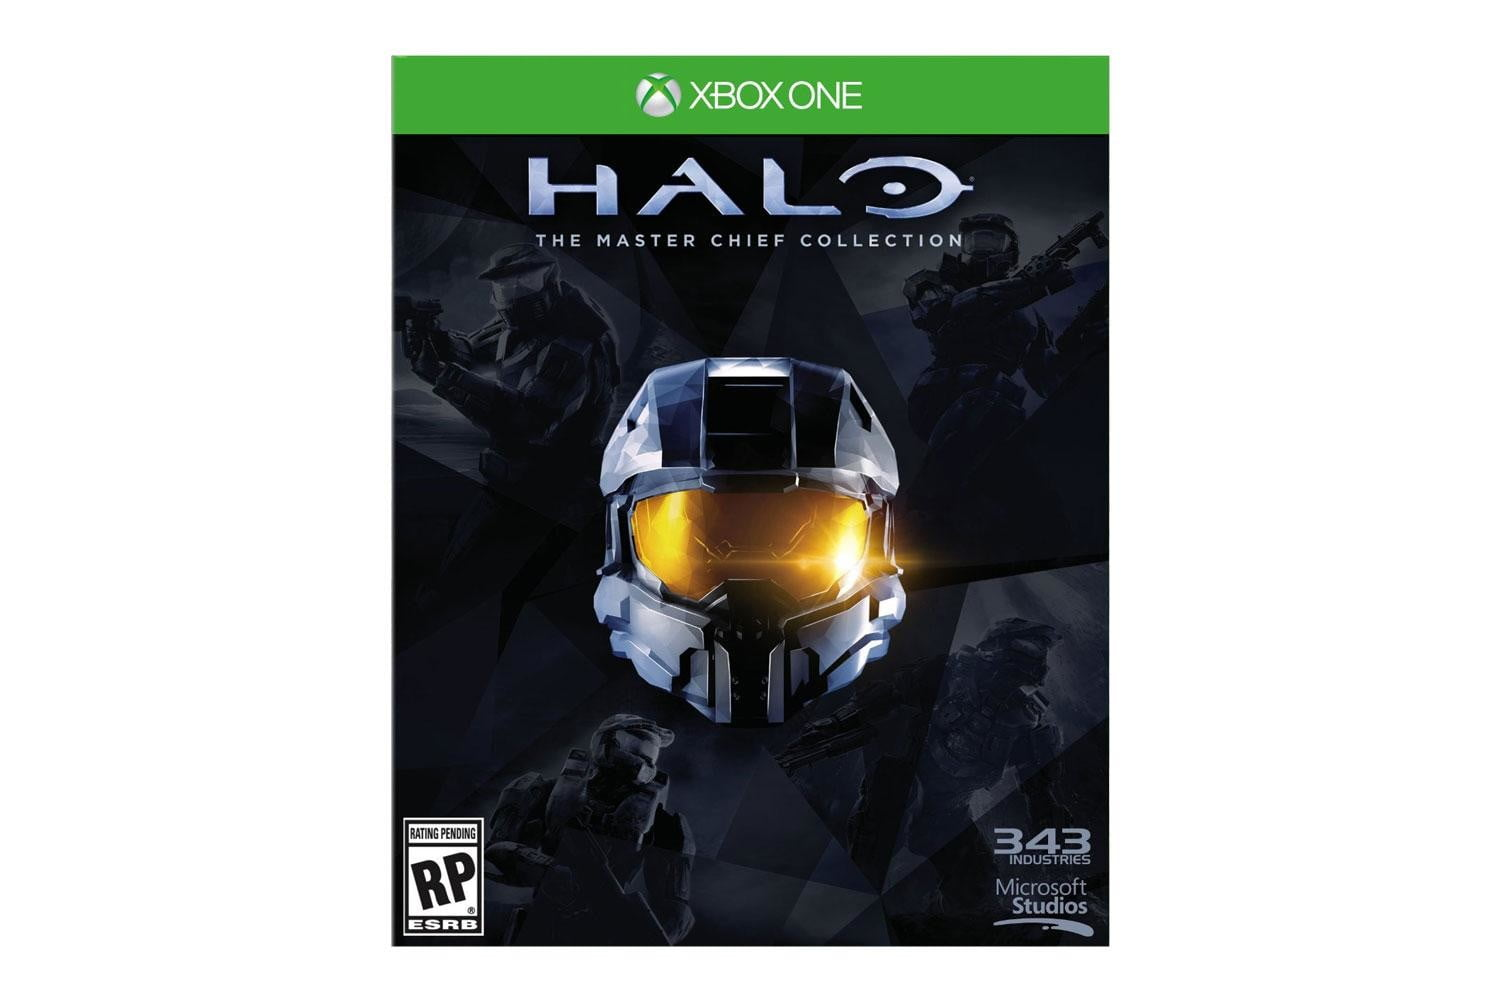 Halo-The-Master-Chief-Collection-cover-art